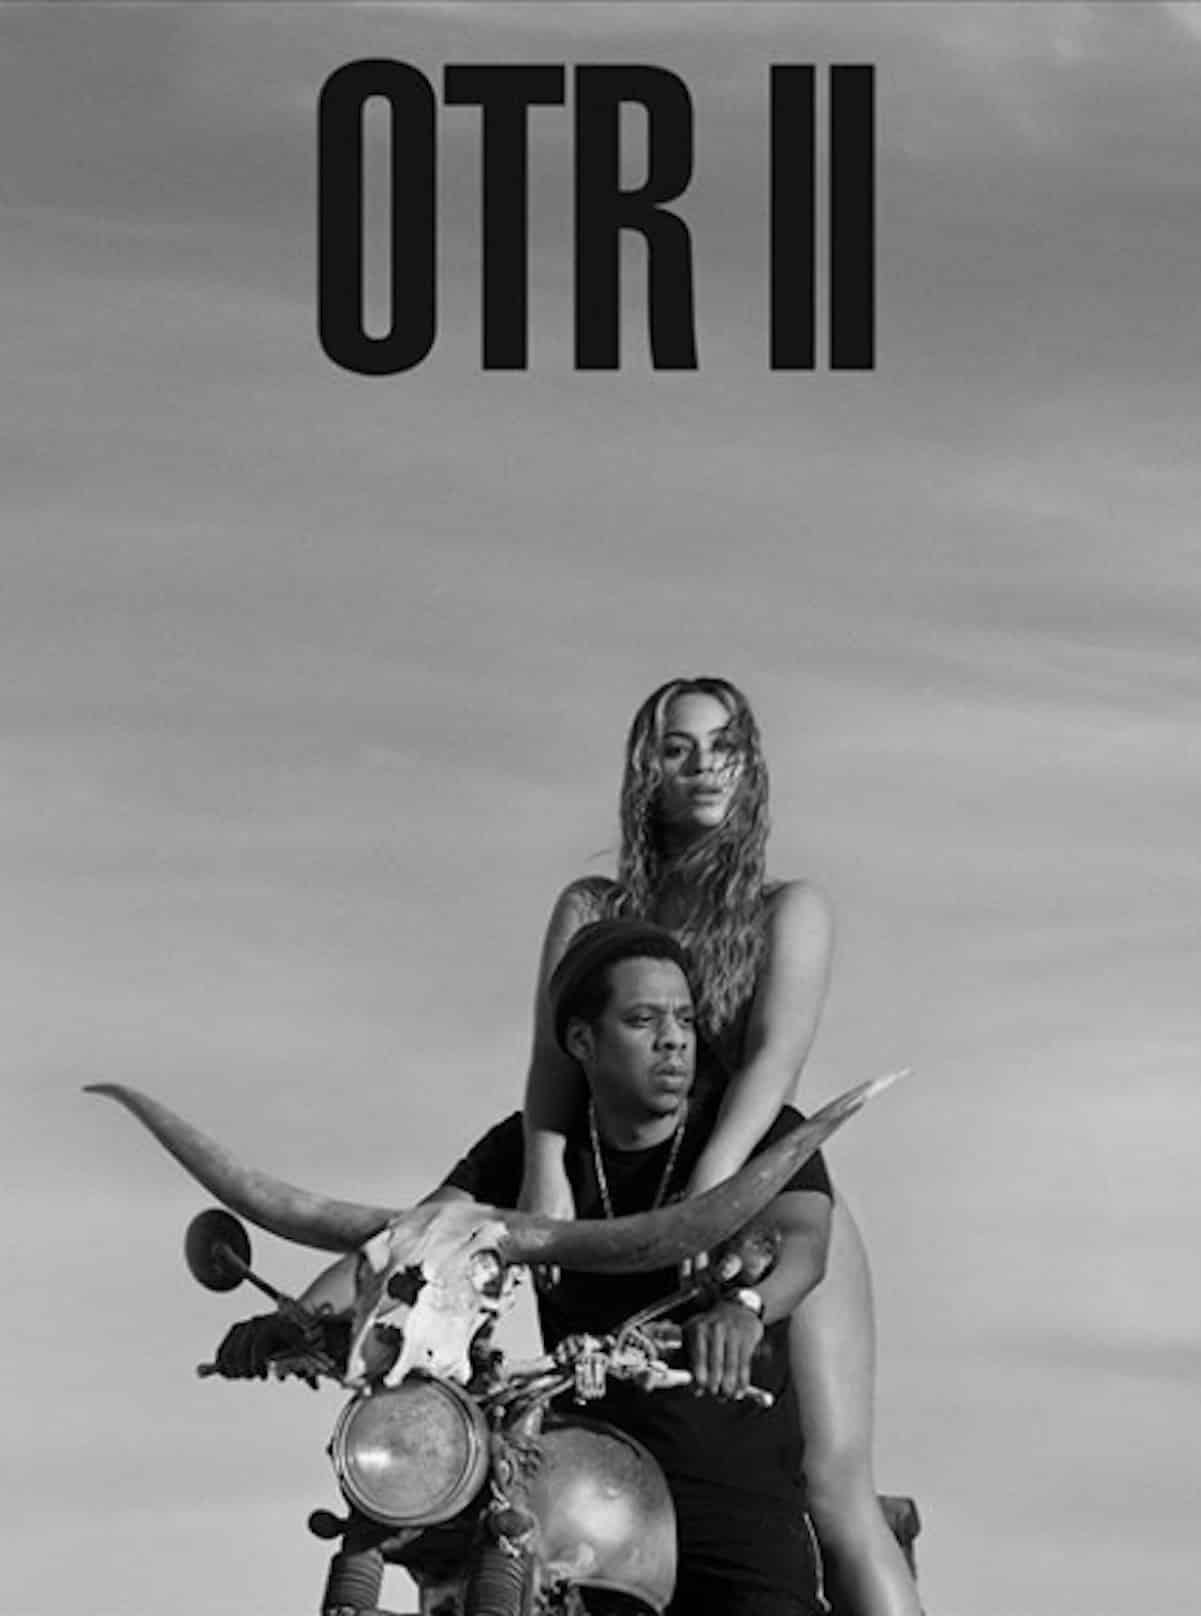 beyonce jay z on the run II tour